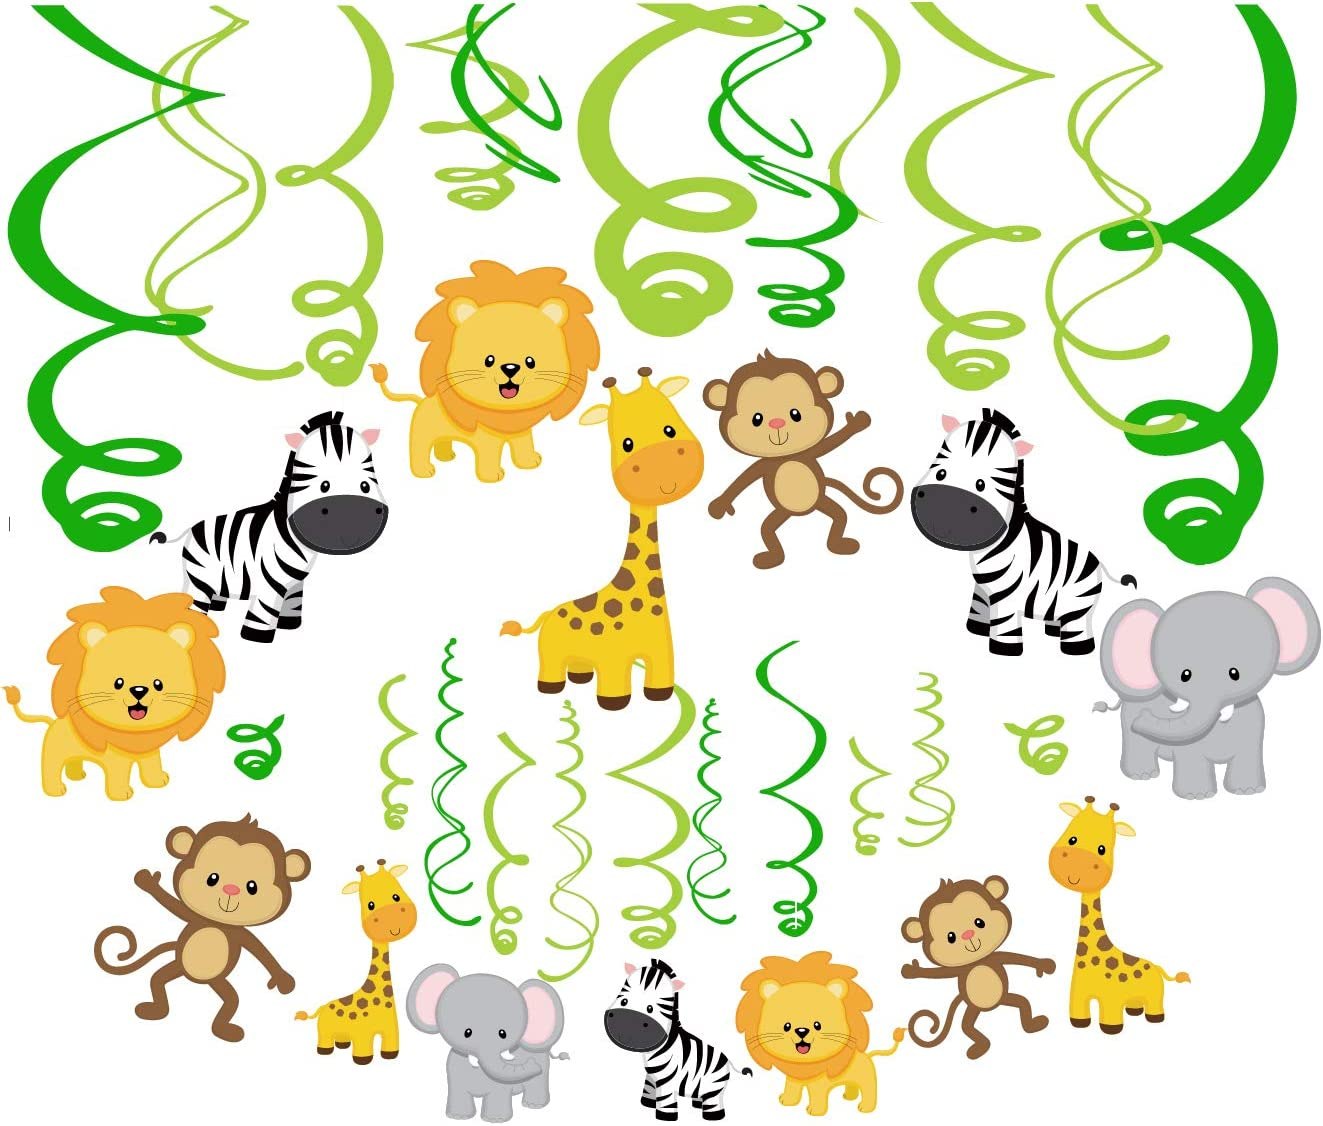 CC HOME Jungle Animal Party Decoration ,Wild One First Birthday Hanging Swirl Decoration Kit, 1st Boy Girl Jungle Theme Baby Shower Decorations Jungle Bday Party Hanging Decoration Set for Safari Party ,Zoo Animal, Forest Friend Creatures Party Decoration Supplies